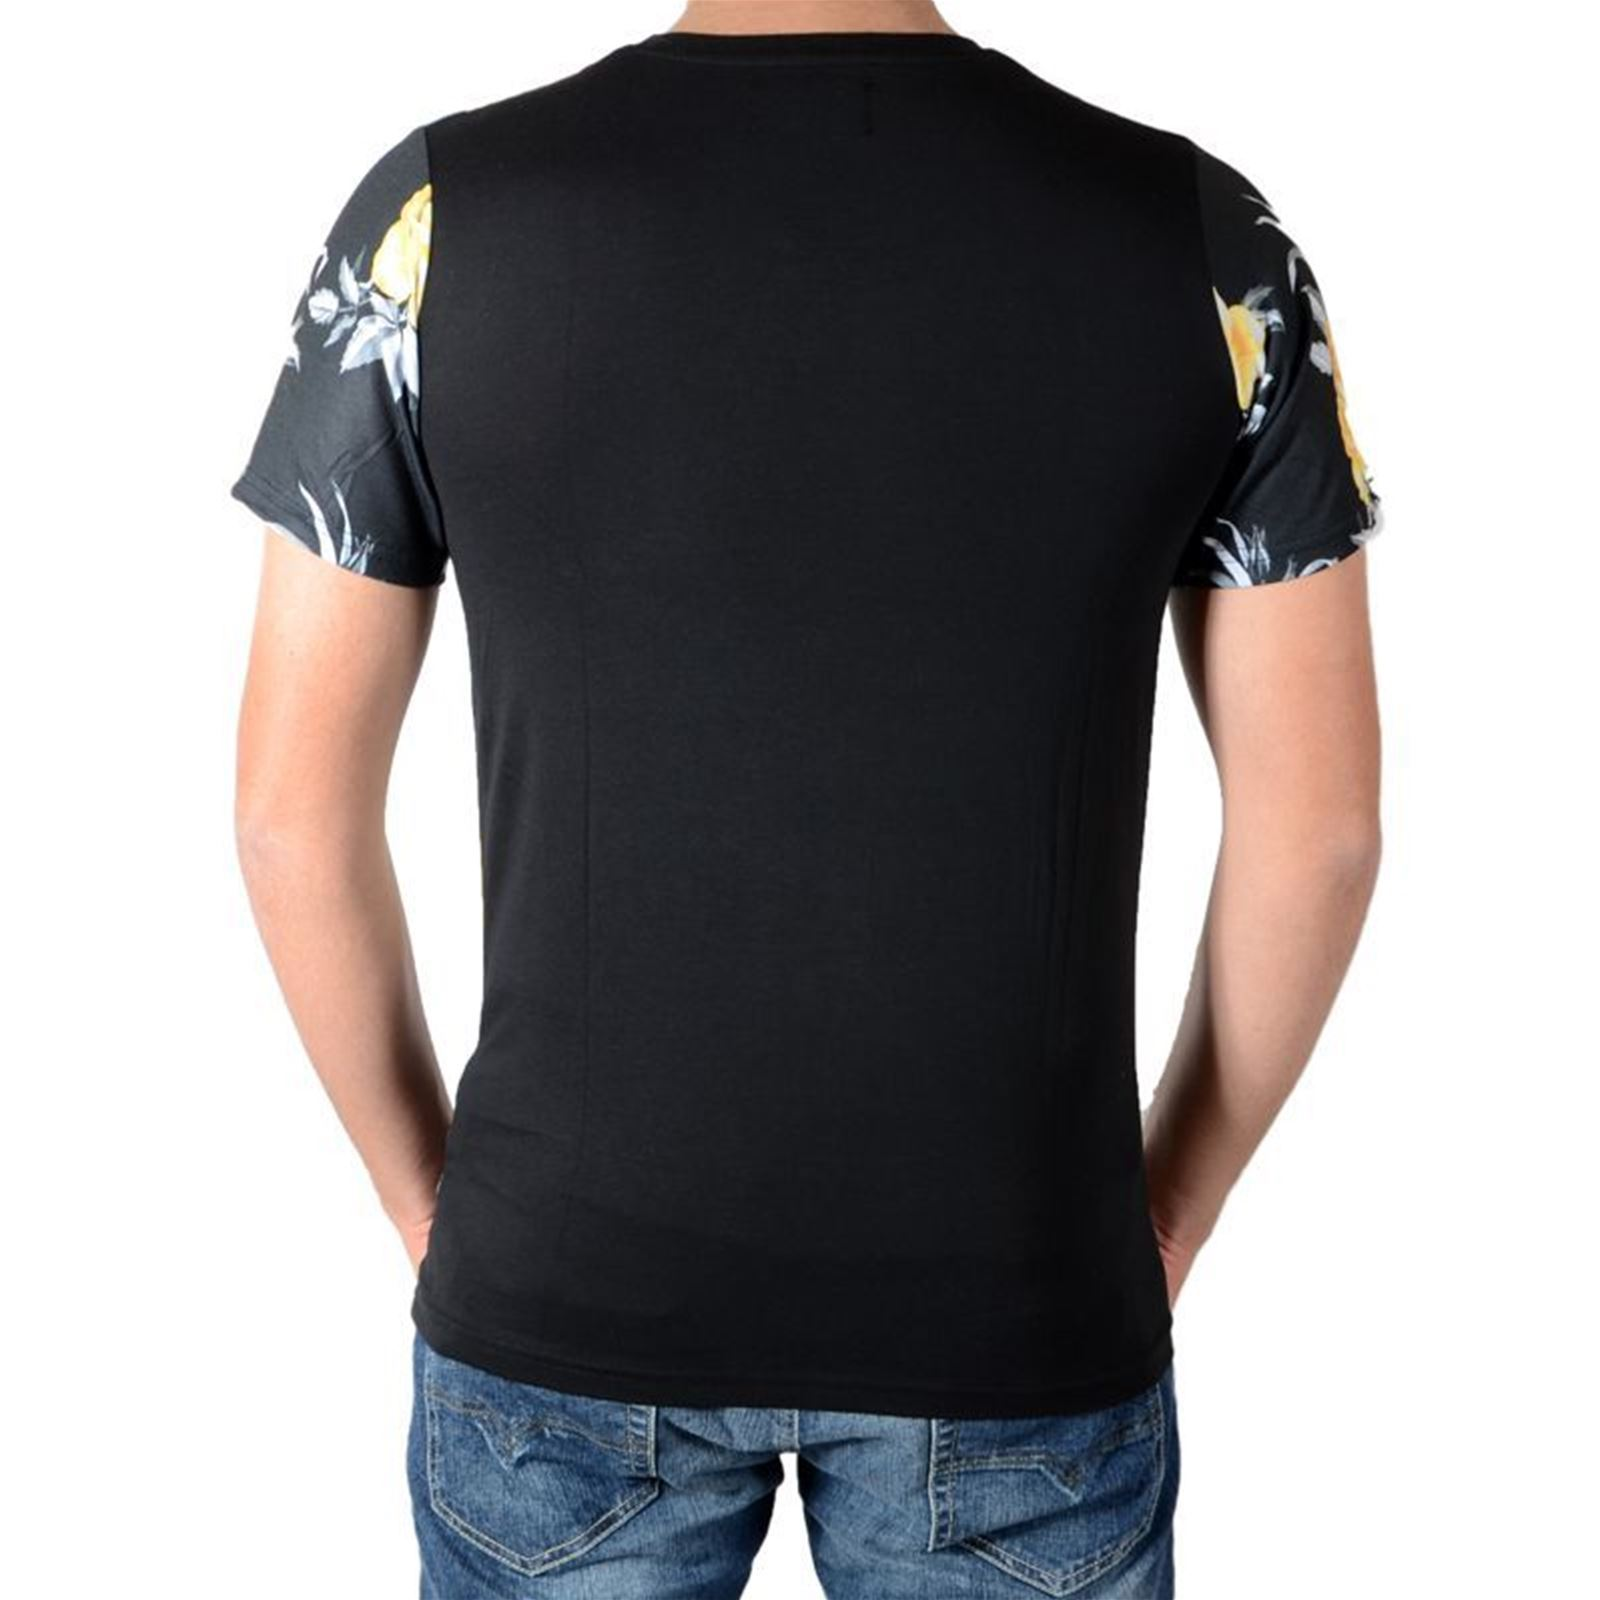 Manches T Tees Homme shirt Celebry CourtesNoir V UVqzMpGS